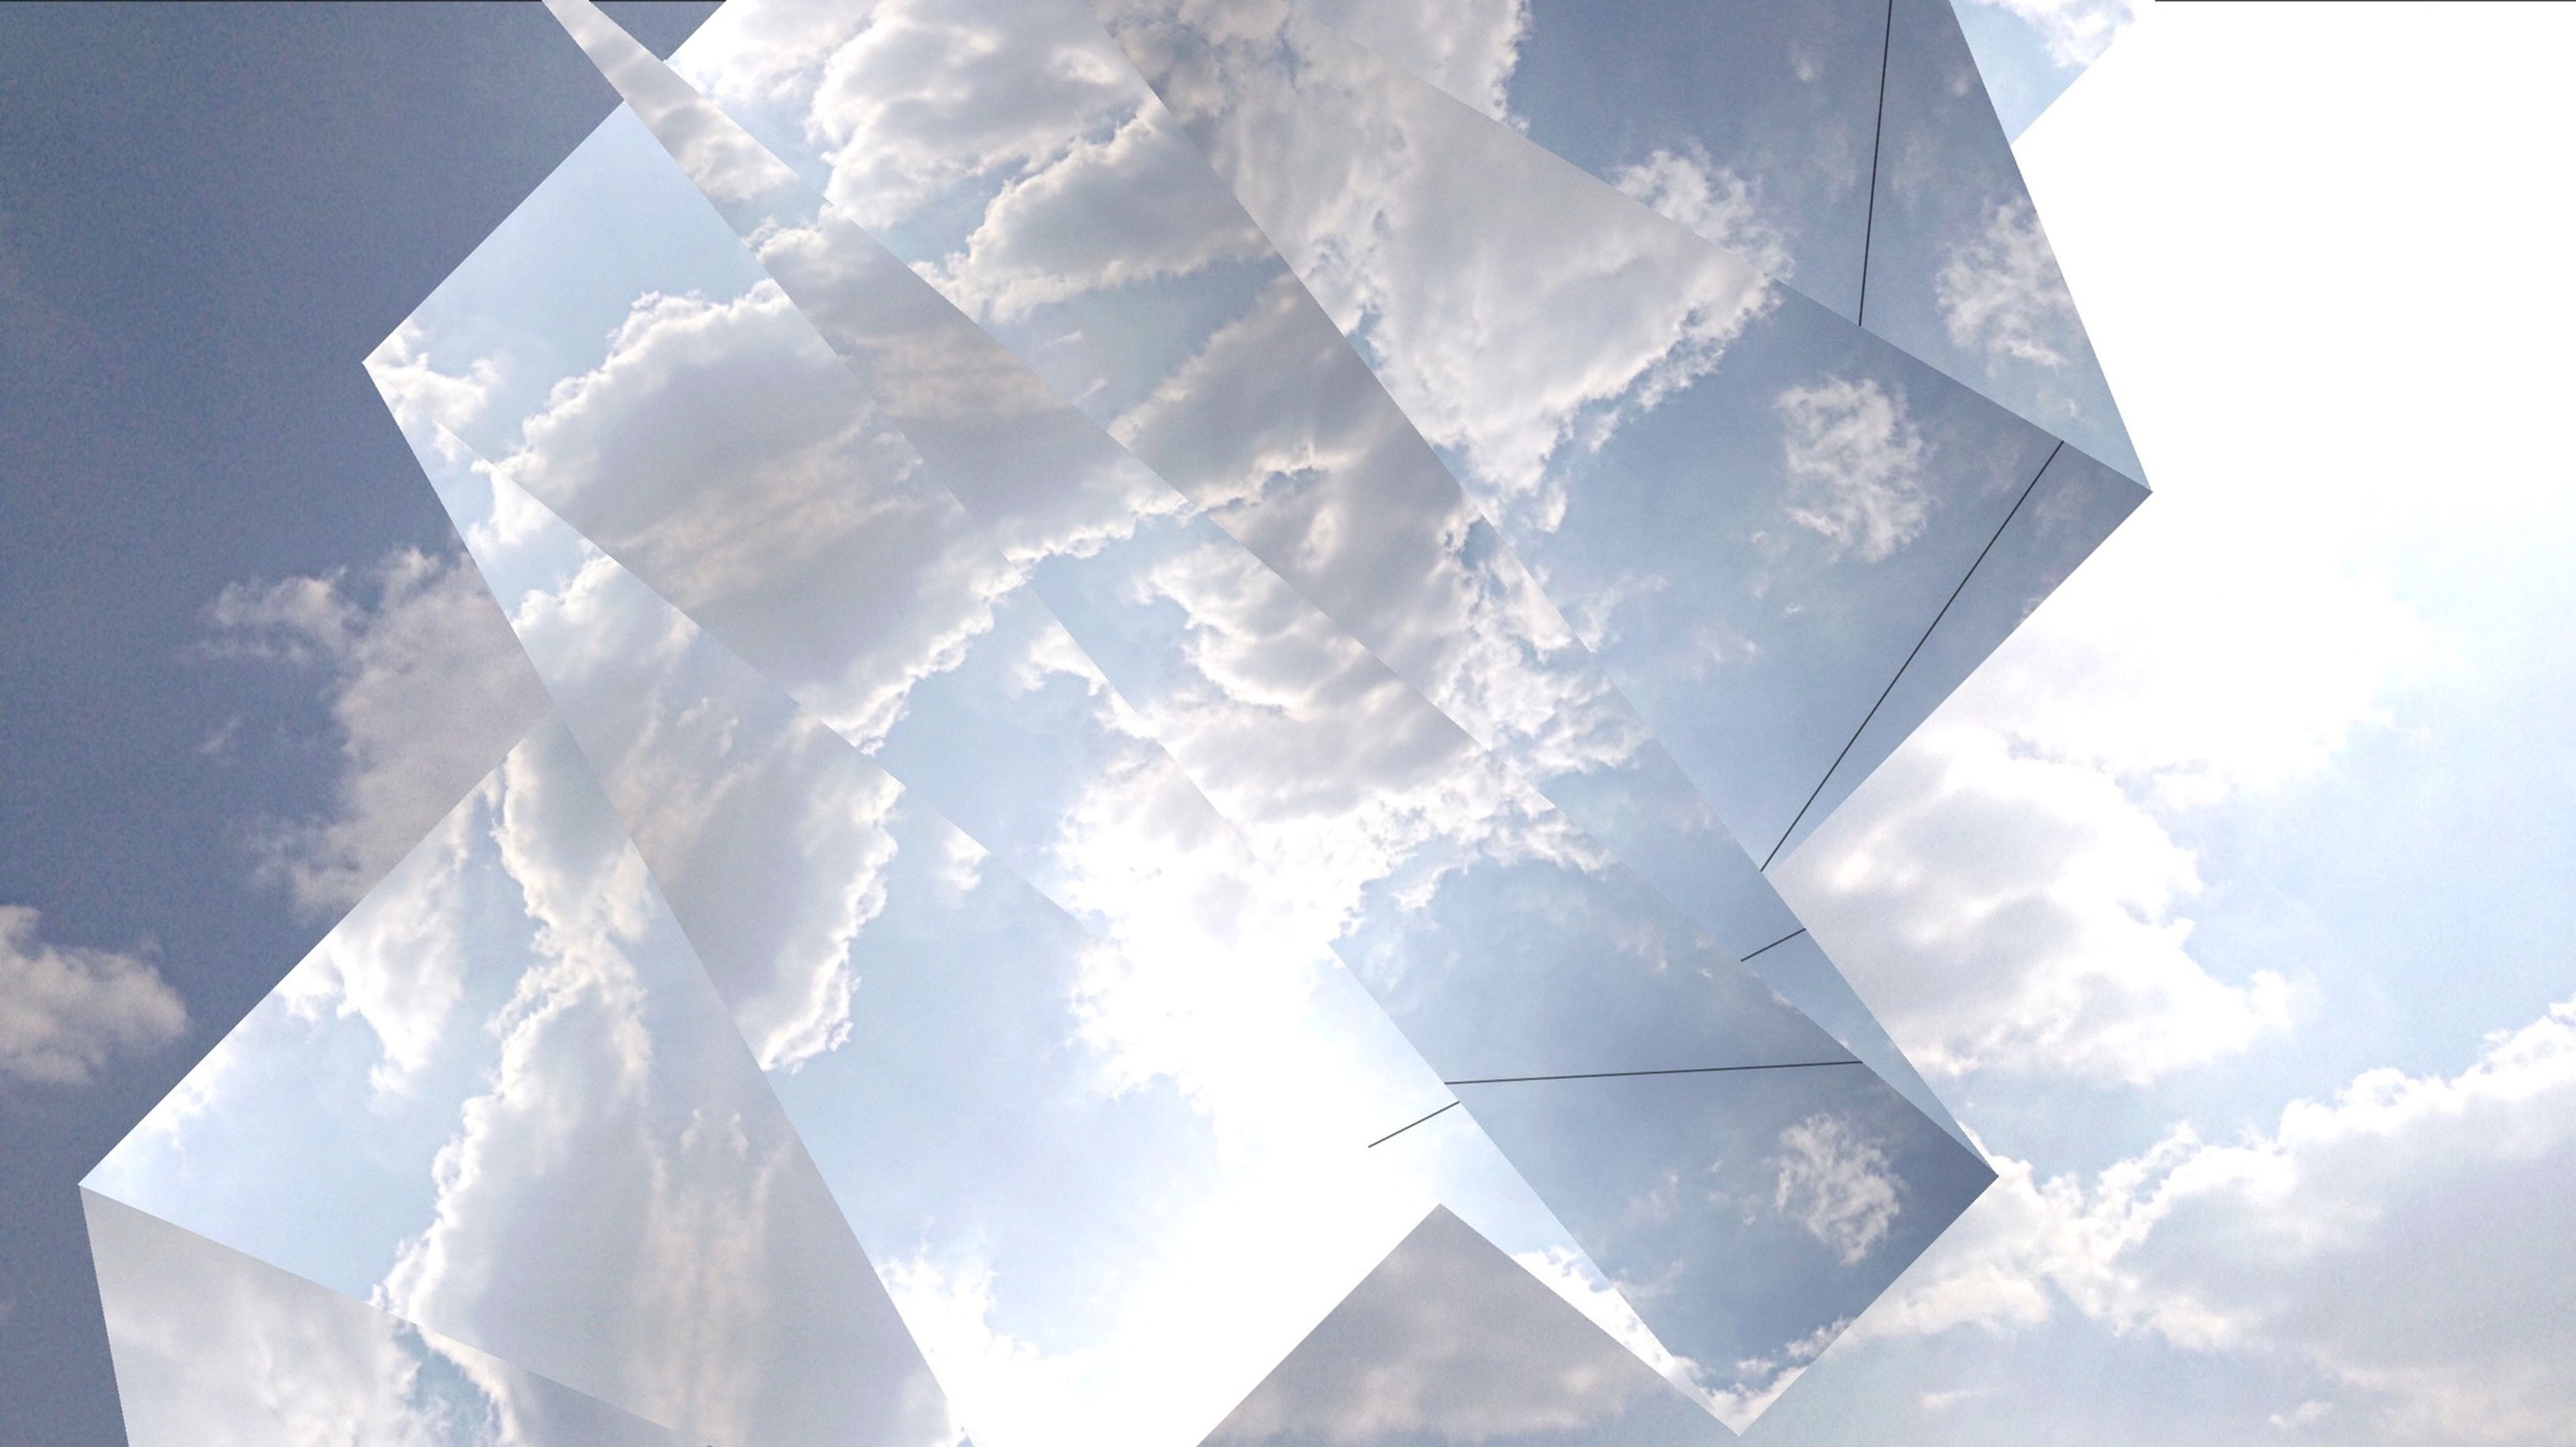 low angle view, architecture, built structure, building exterior, sky, modern, pattern, blue, sunlight, day, directly below, no people, shape, tower, glass - material, geometric shape, design, skyscraper, outdoors, cloud - sky